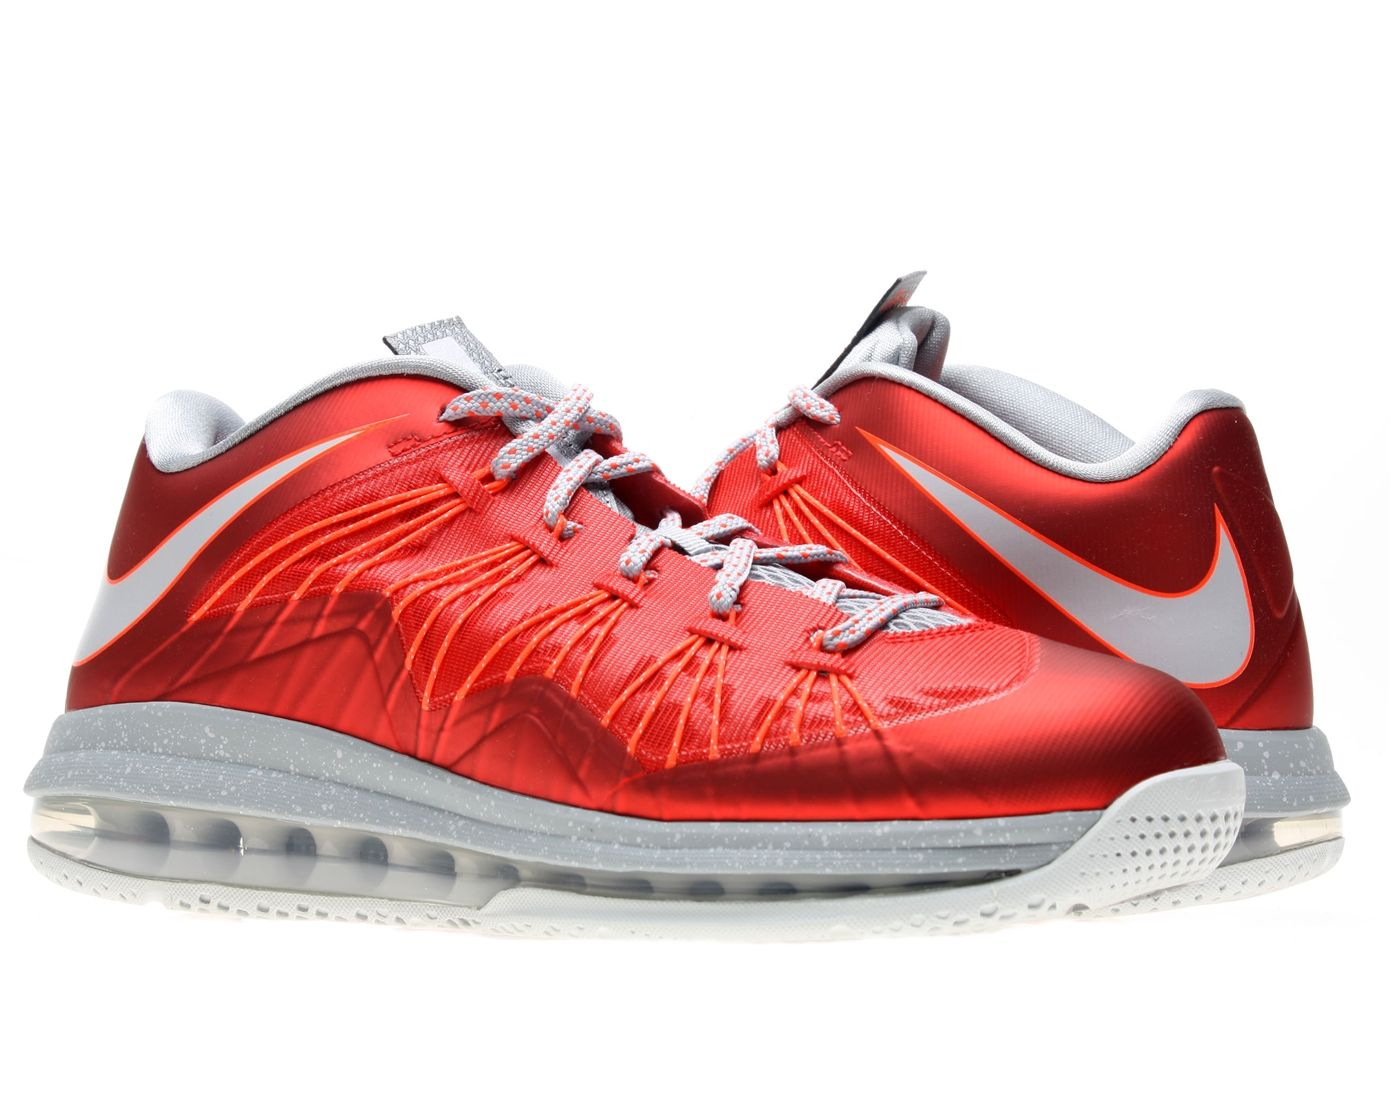 4c9ae518d20d Nike Air Max Lebron X 10 Elite   Low Basketball Shoes  Sneakers Red ...